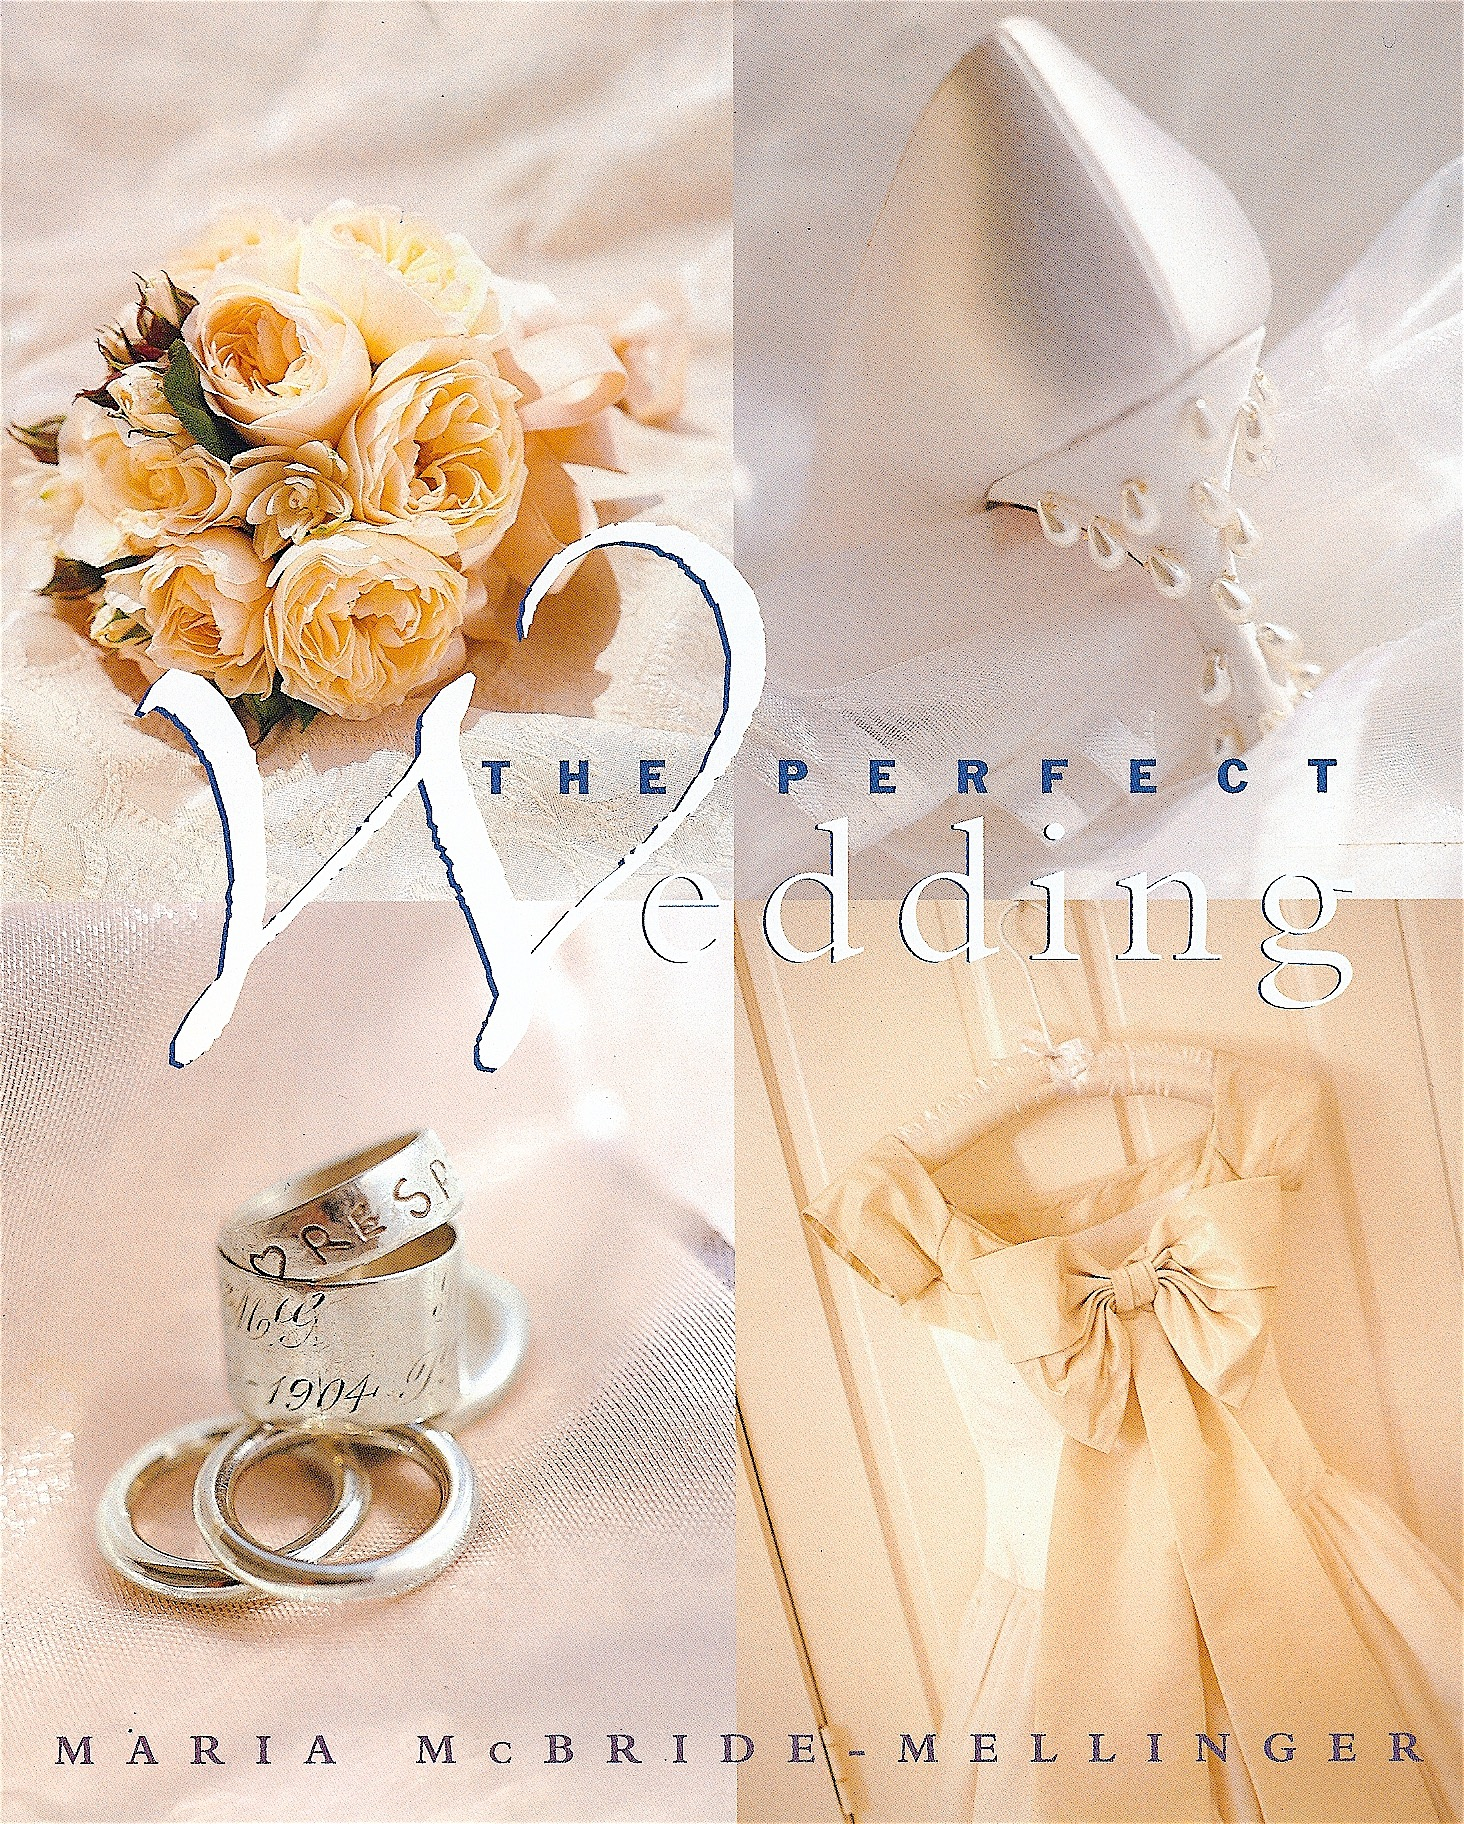 Coffin & King Press - Coffin & King Gilded Vase and Gold Wedding Band featured in The Perfect Wedding